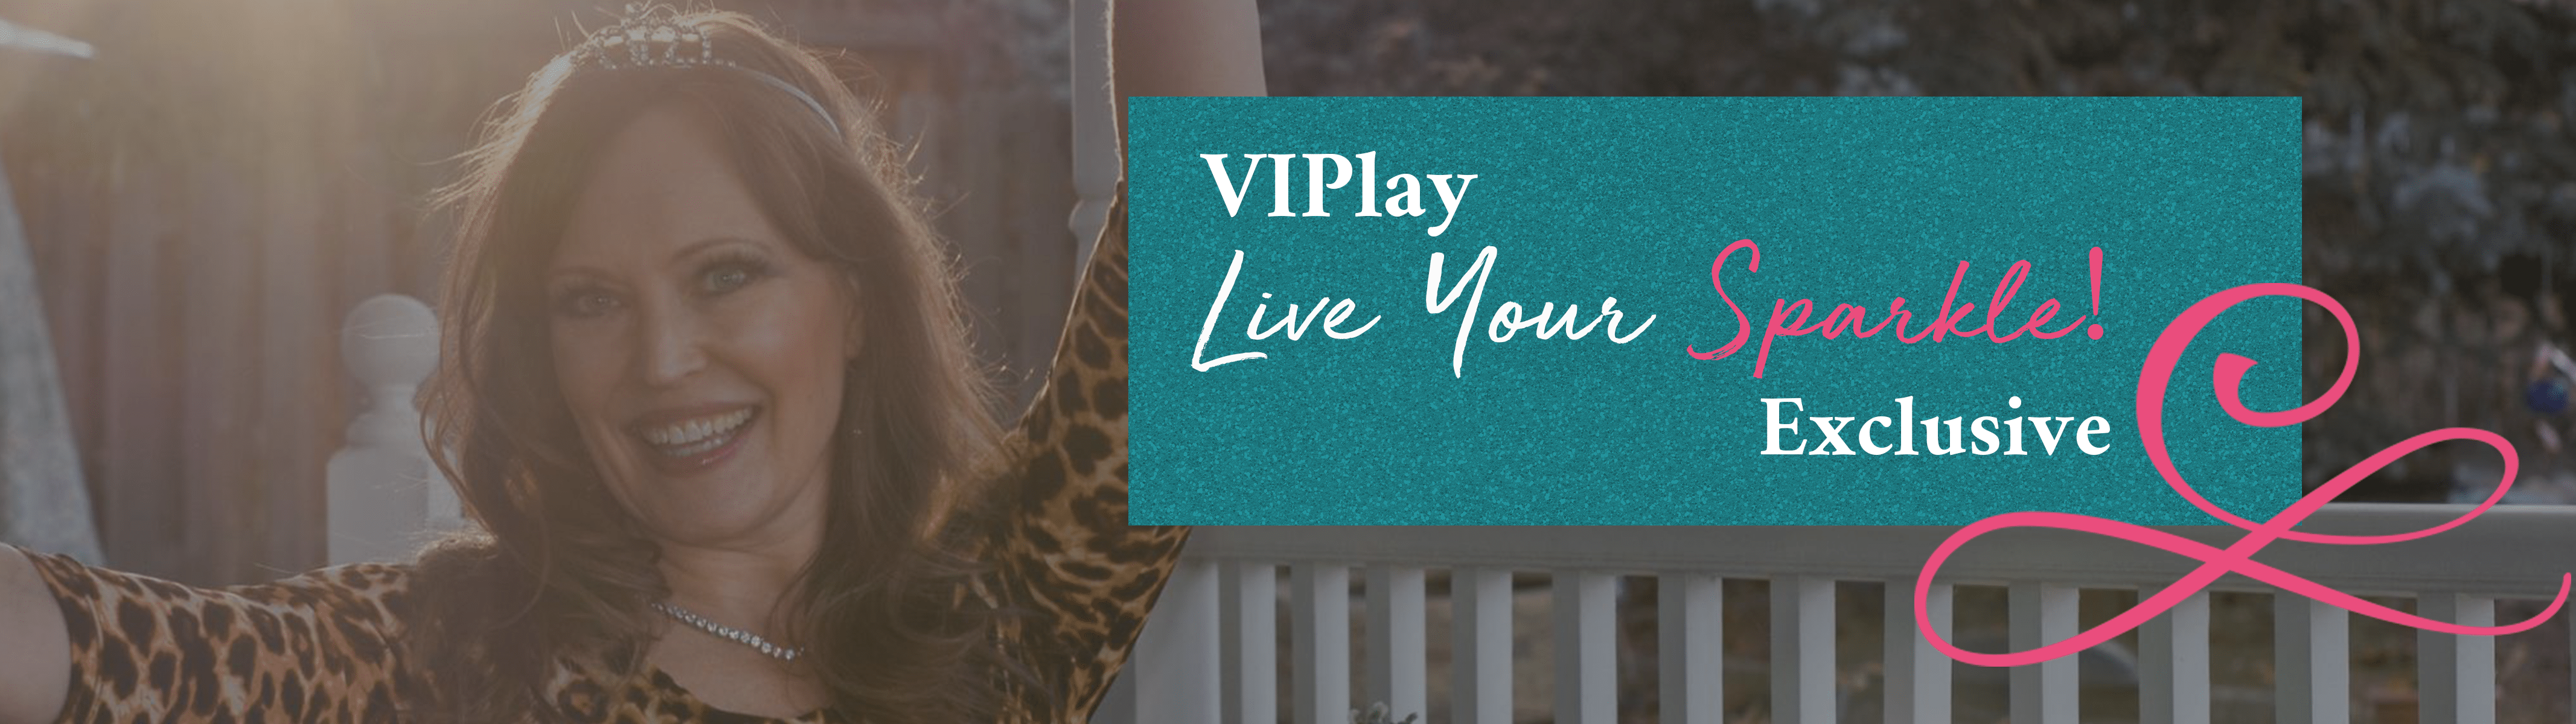 VIPlay Live Your Sparkle